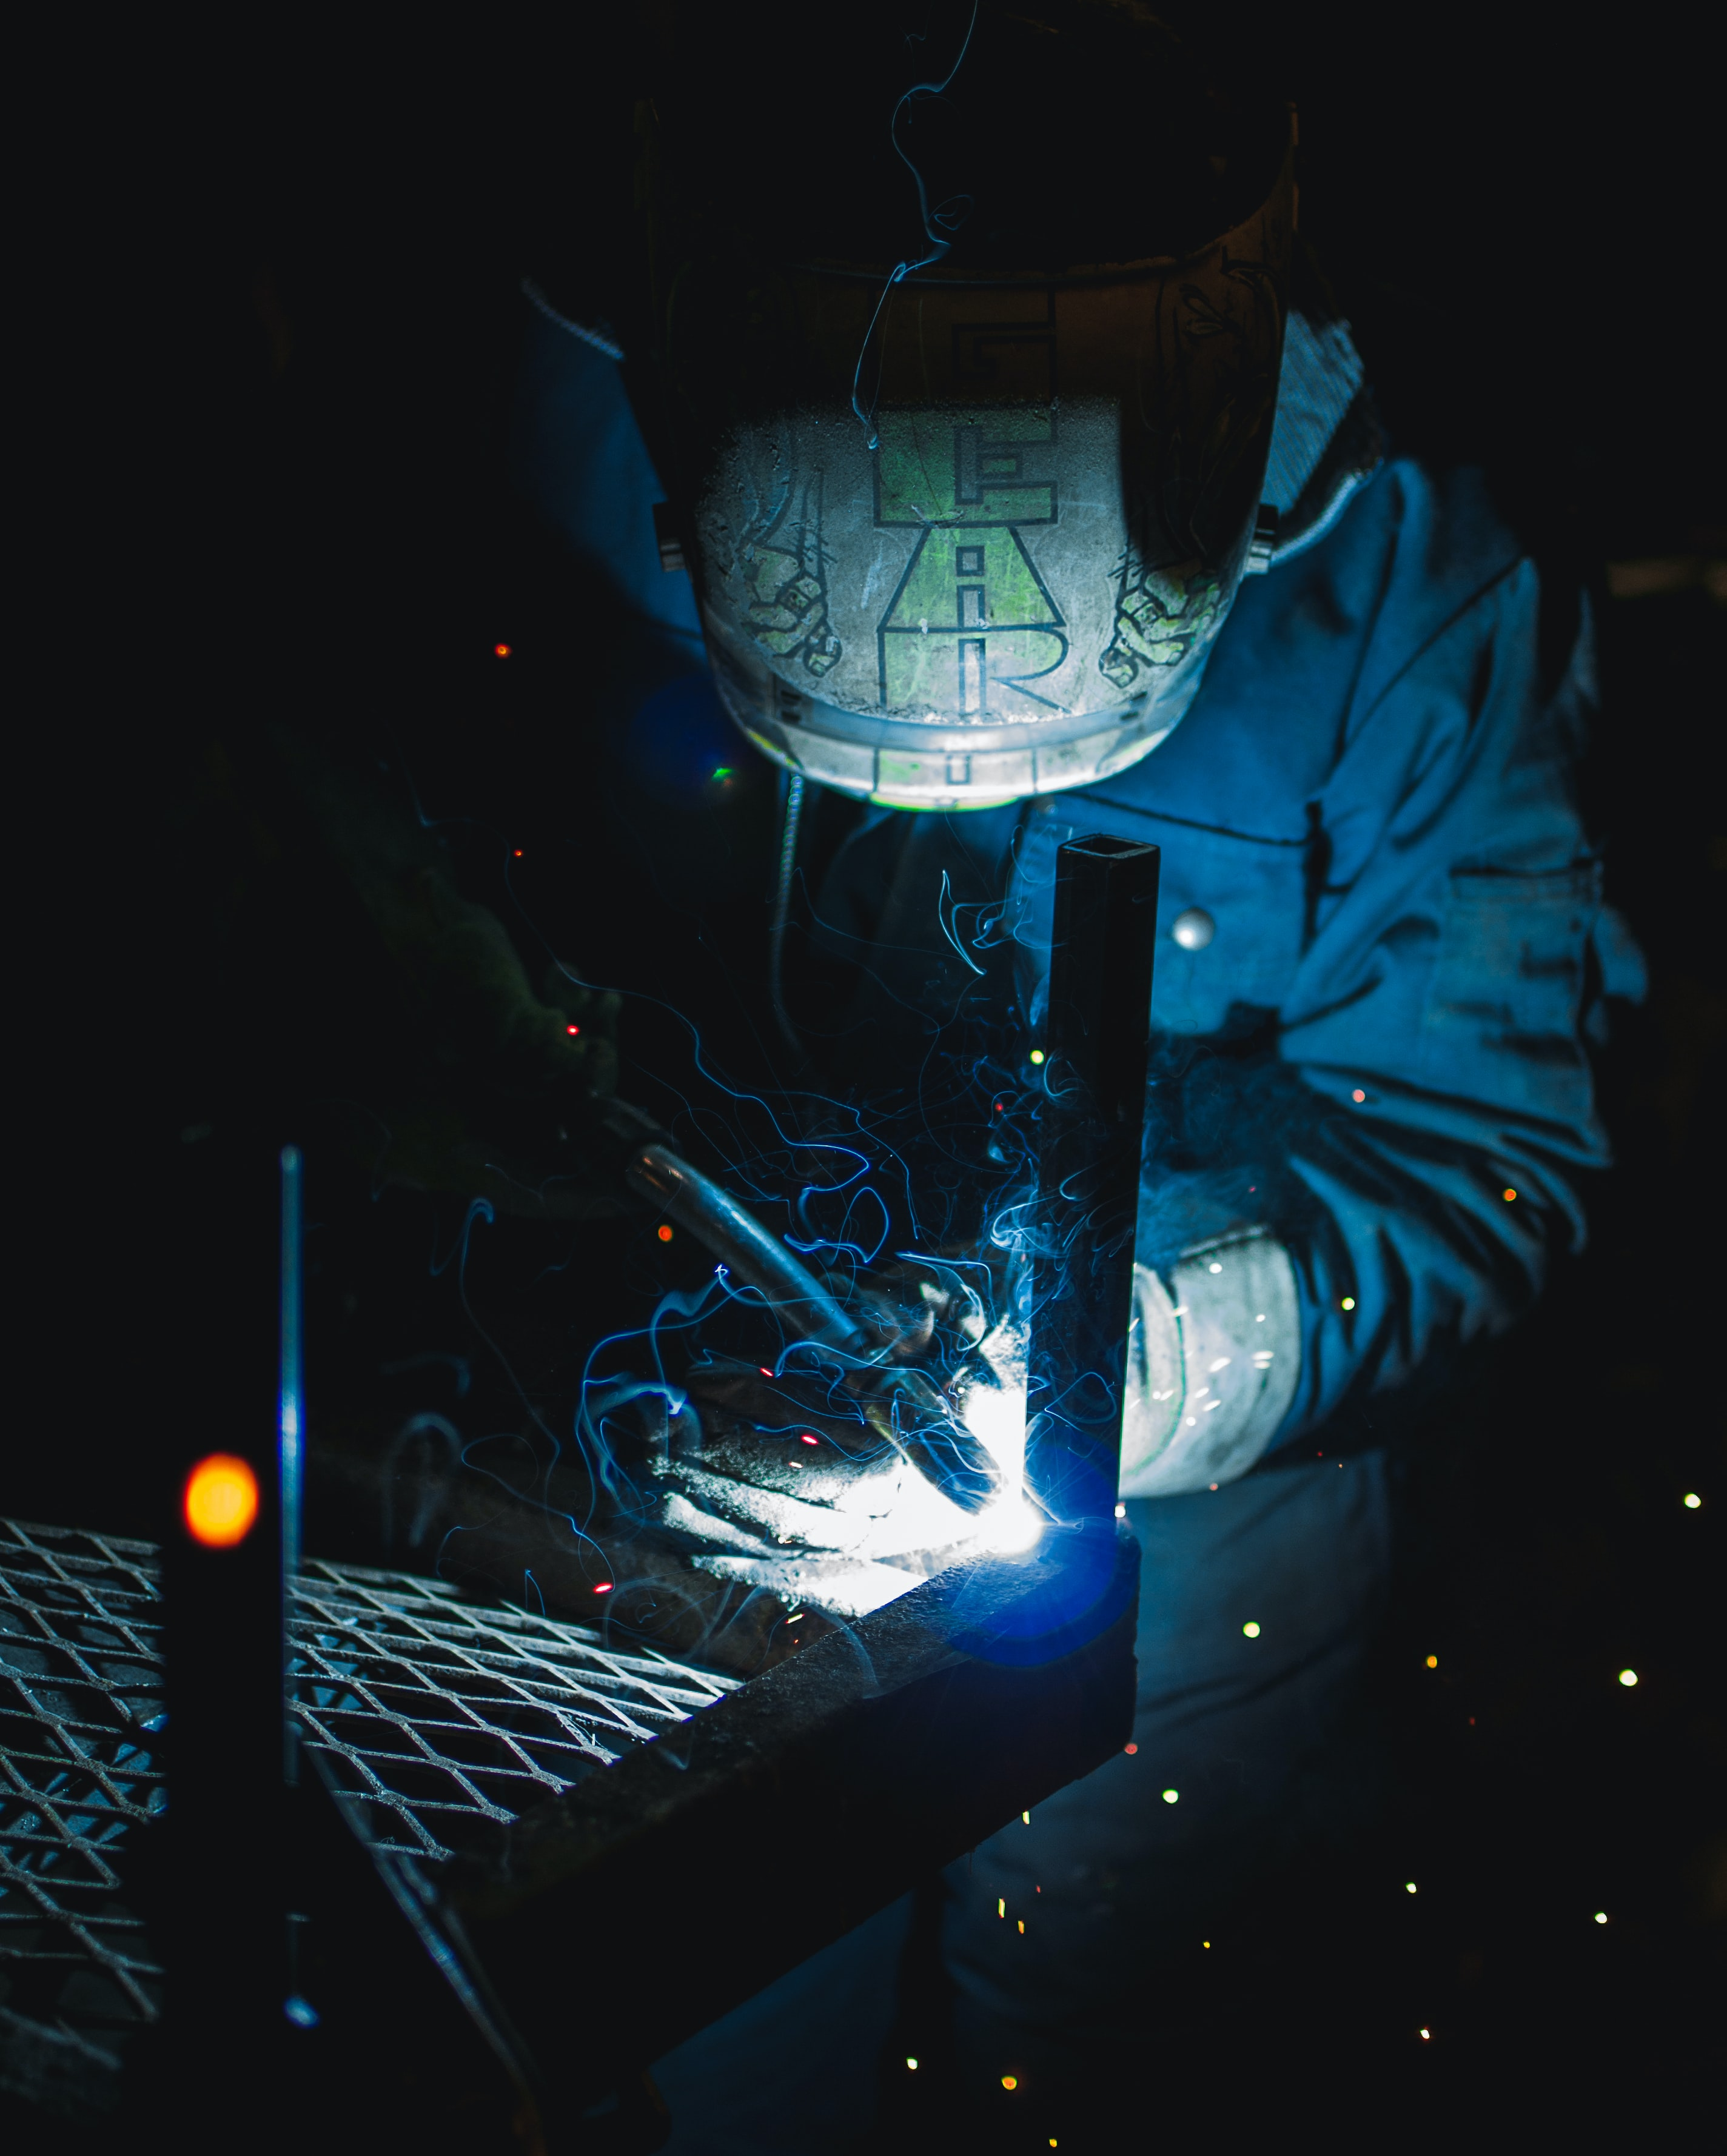 time lapse photography of welder